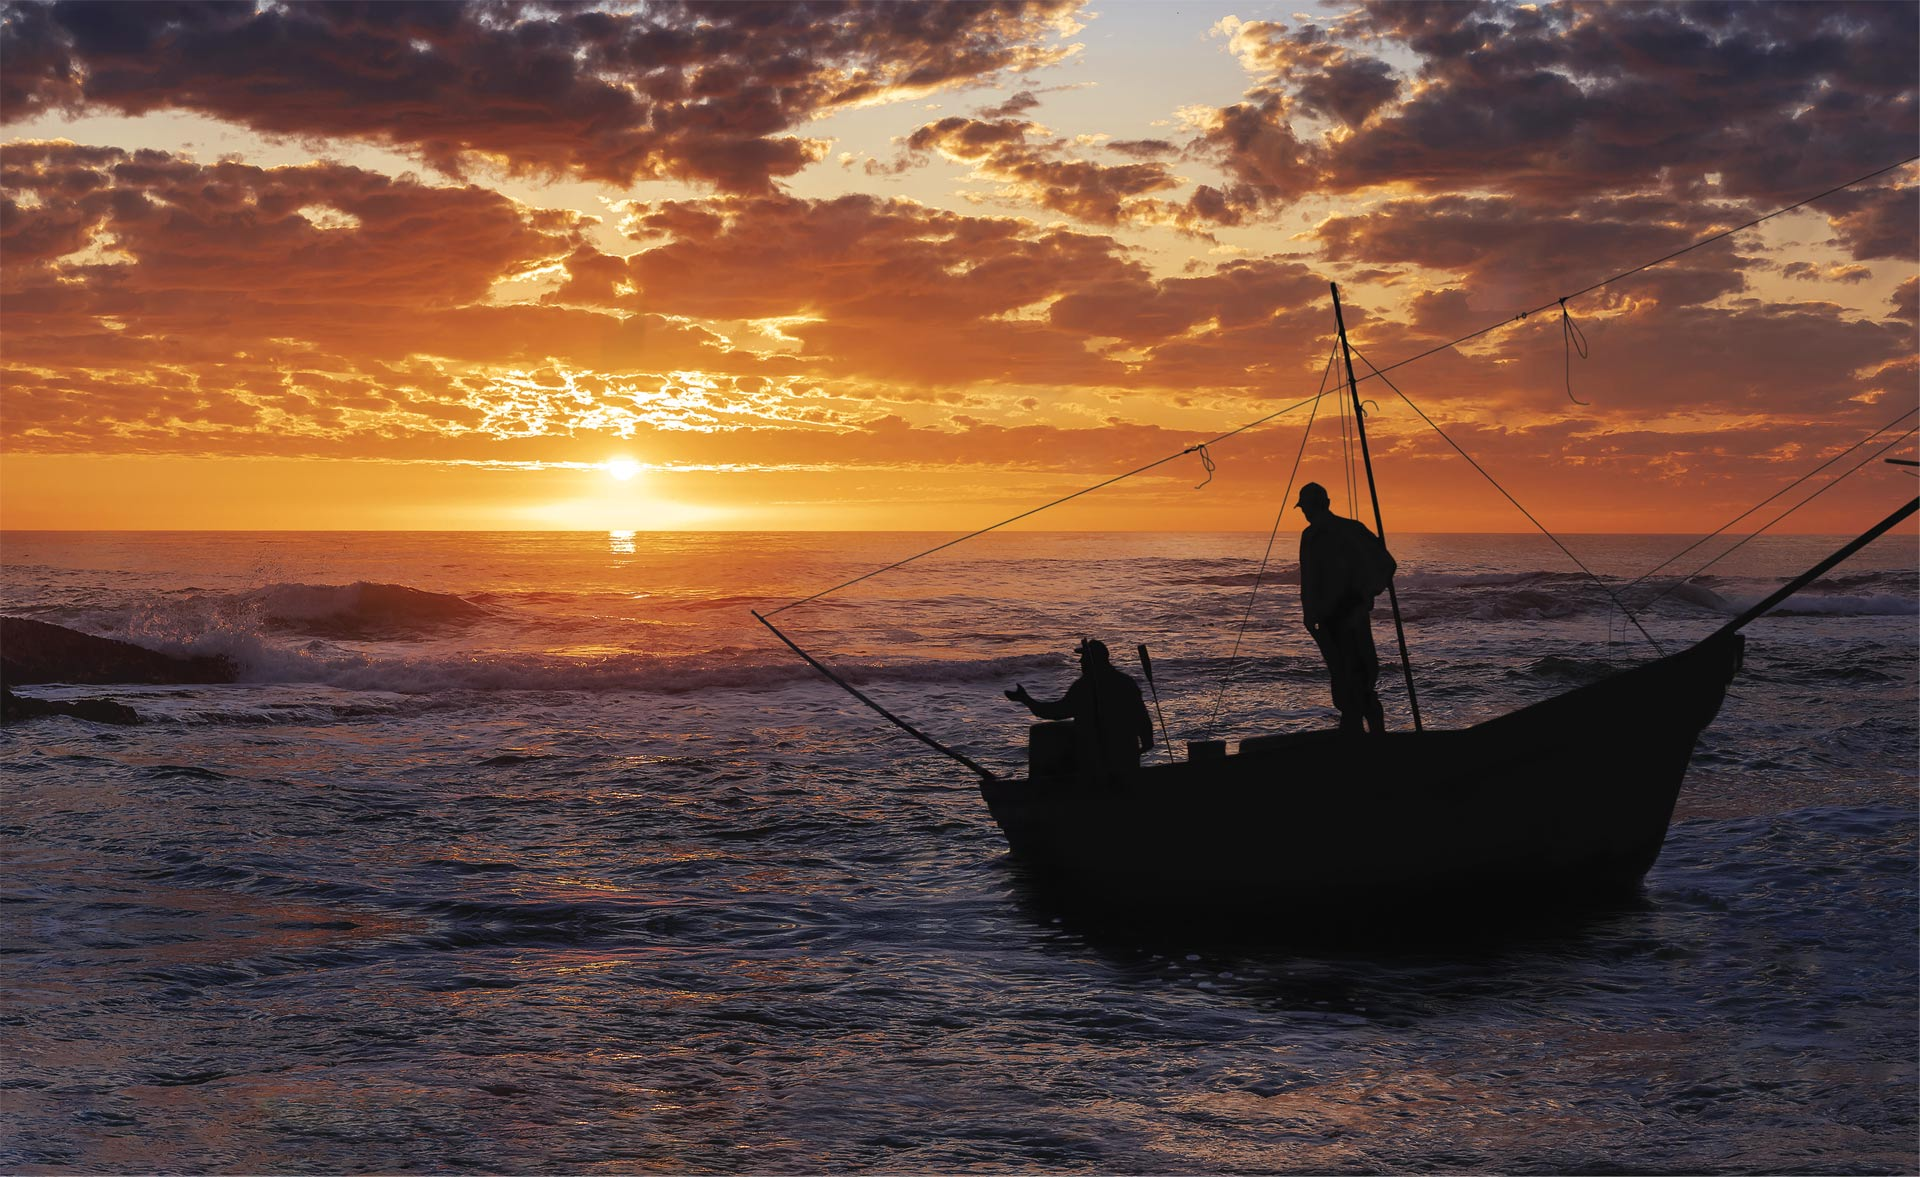 fishermen on boat with sunset